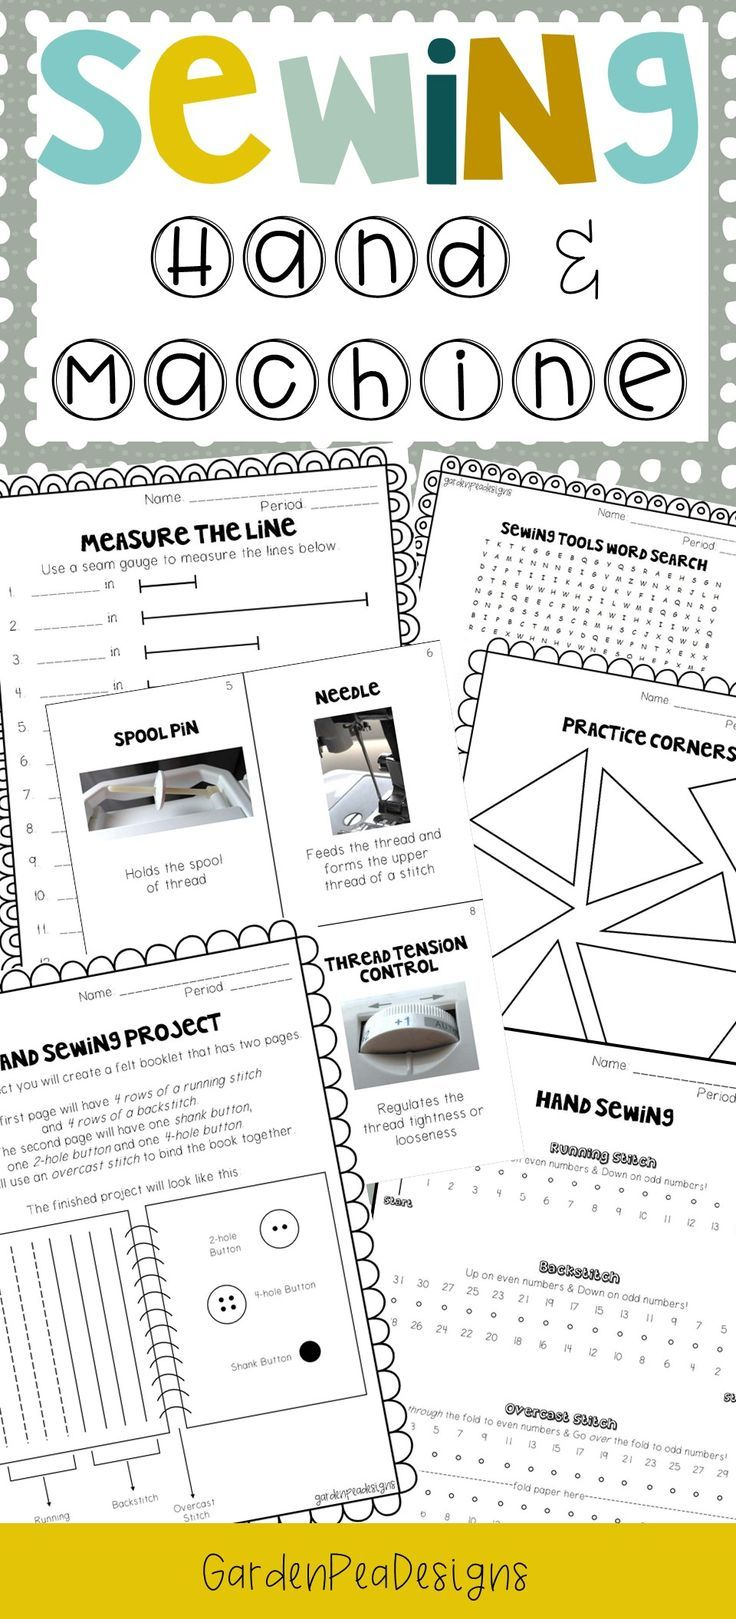 14 00 Family And Consumer Sciences Sewing Packet Includes Posters Activities Hands On Opportunities And Teaching Sewing Classroom Sewing Sewing Activities